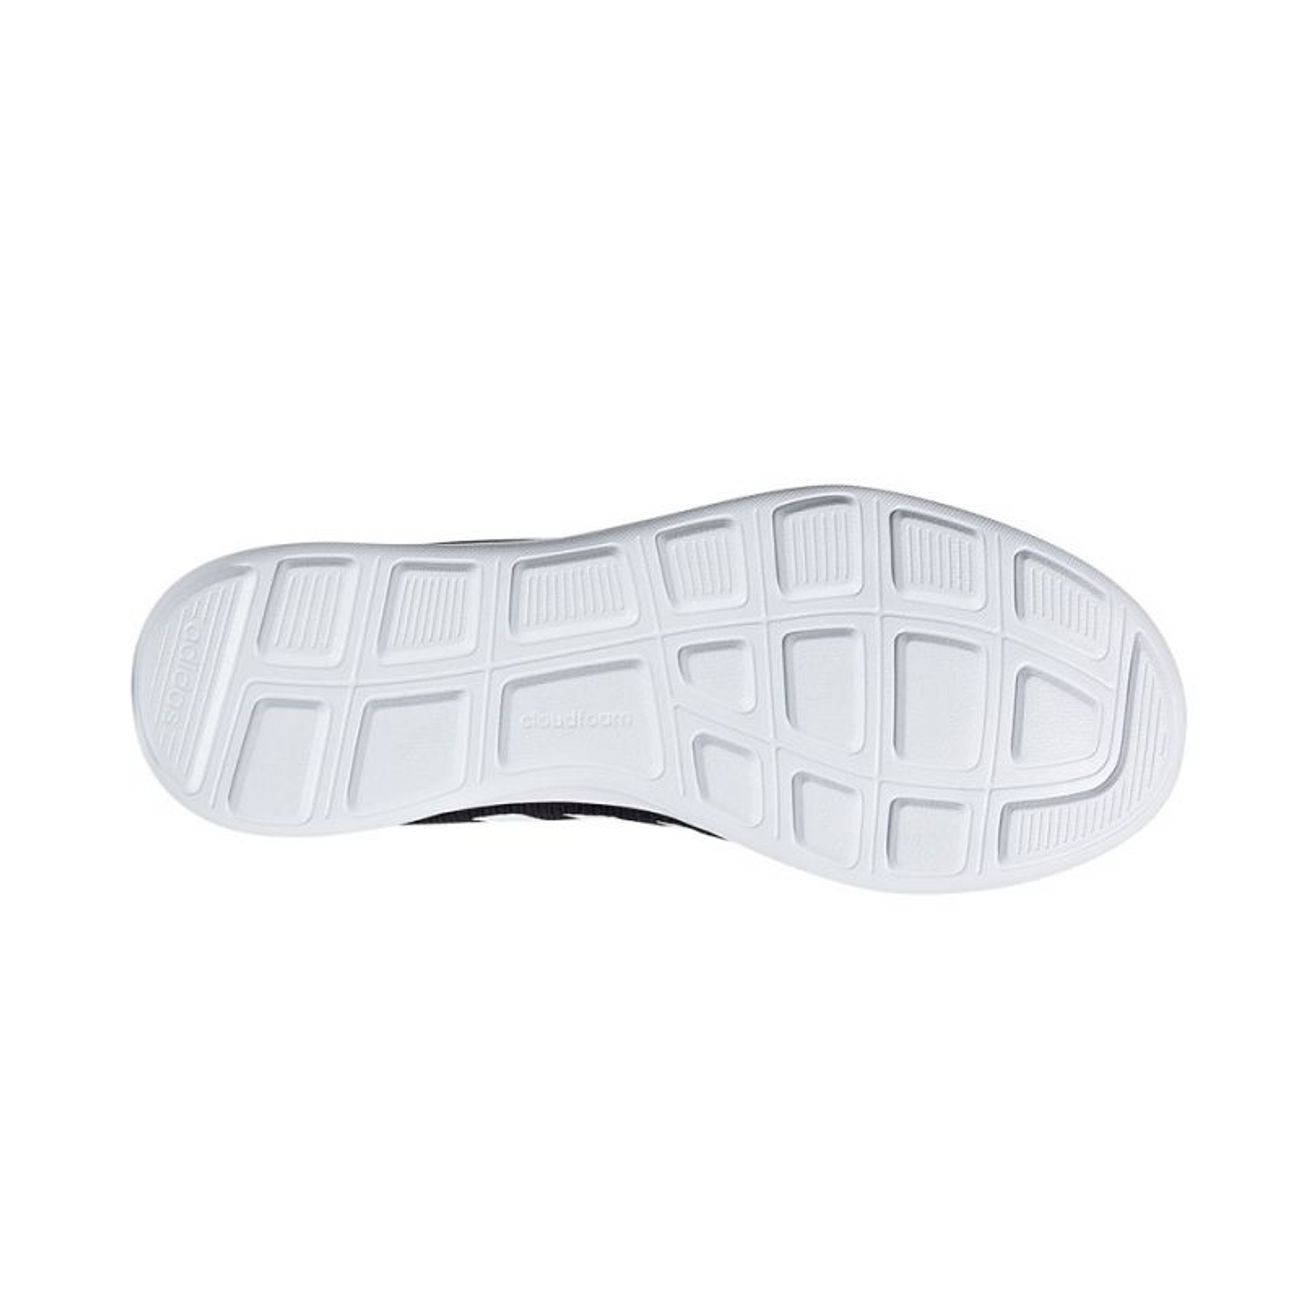 Swift Neo Db0701 Cloudfoam Adulte Padel Adidas Racer htdCQrs